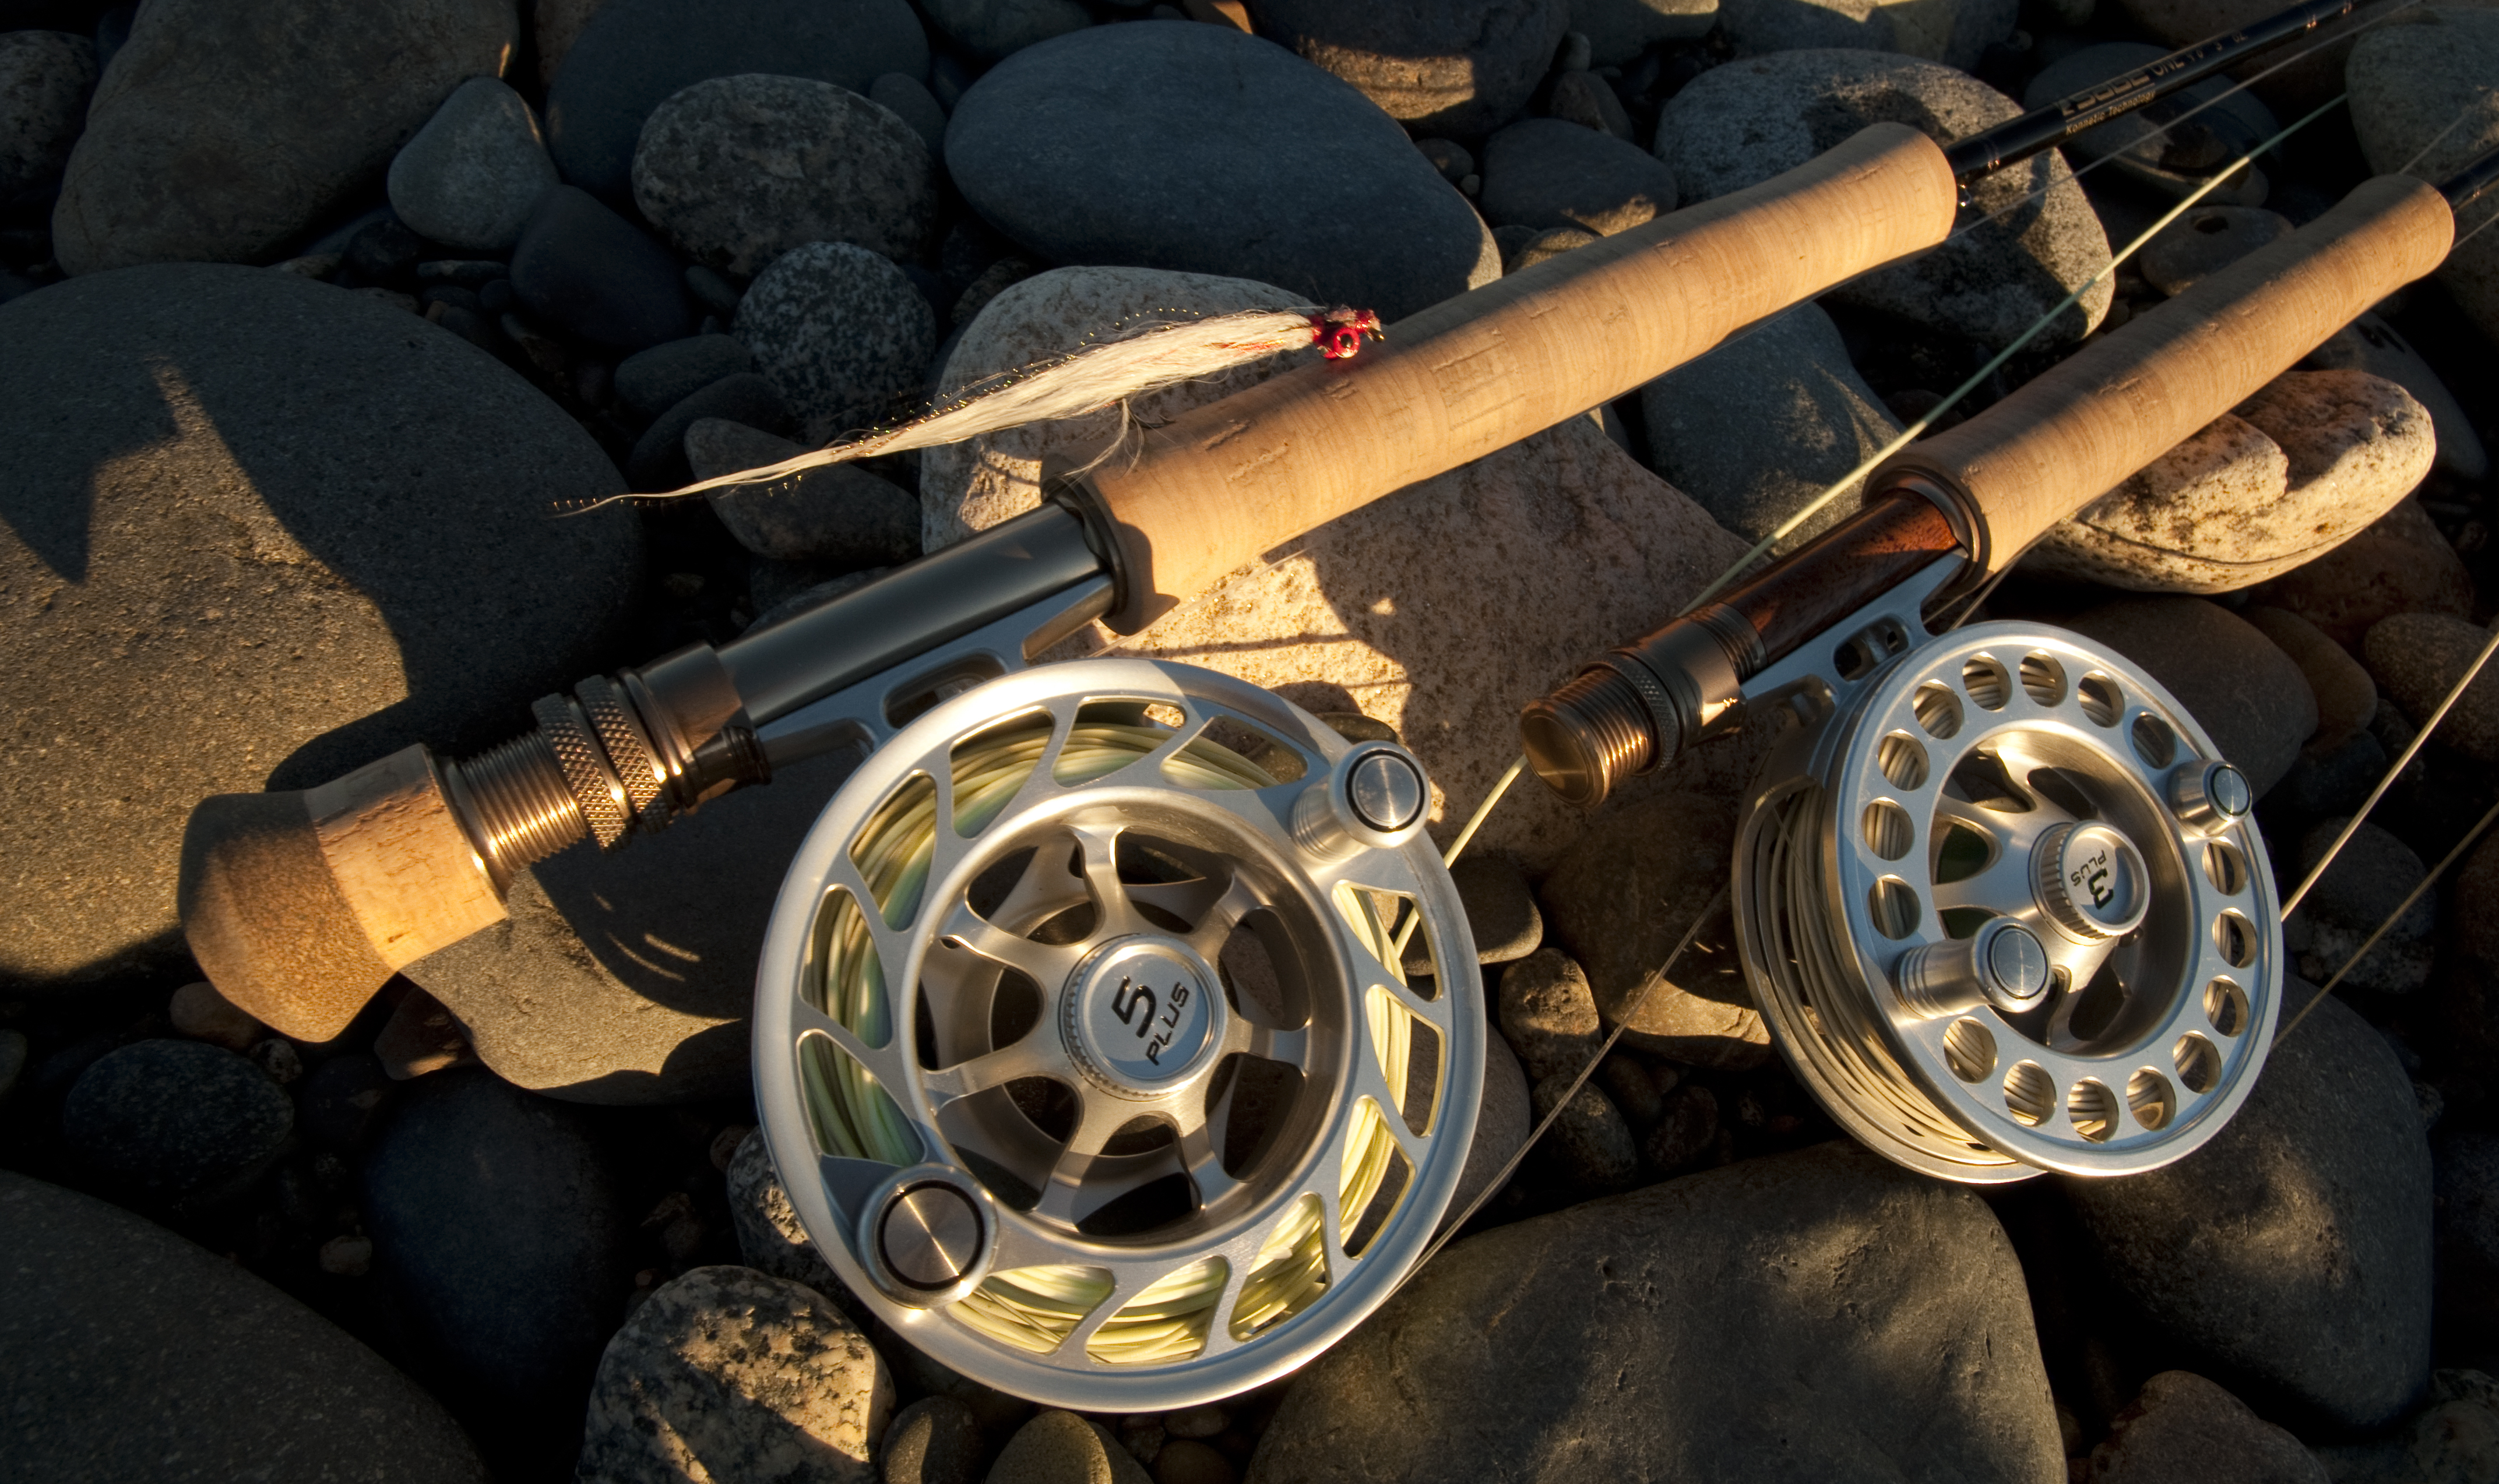 Hatch Fly Reel Review by Steve Schmidt – Western Rivers Fly Fisher